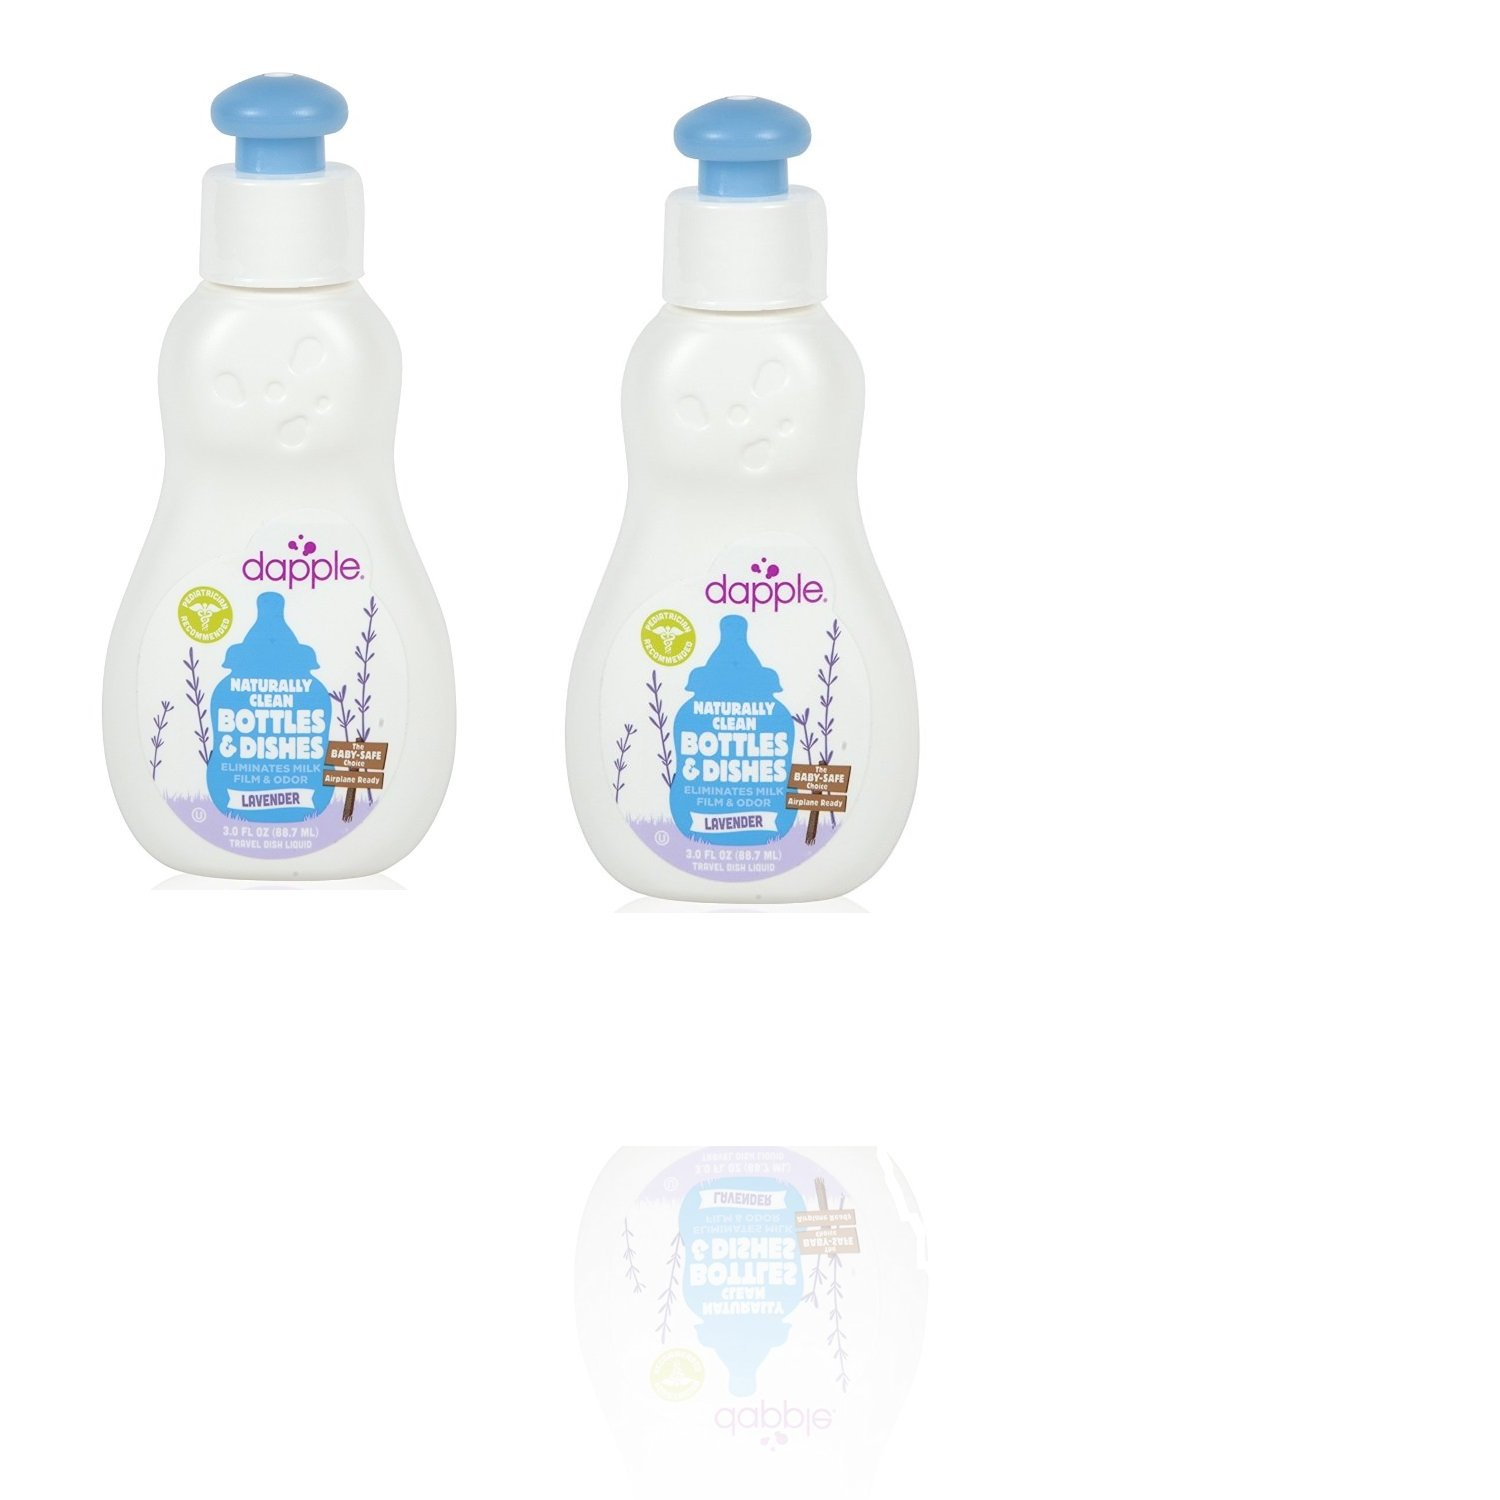 Dapple Baby Bottle and Dish Liquid, Lavender, Travel Size, 3 Fluid Ounce, 2 Pack